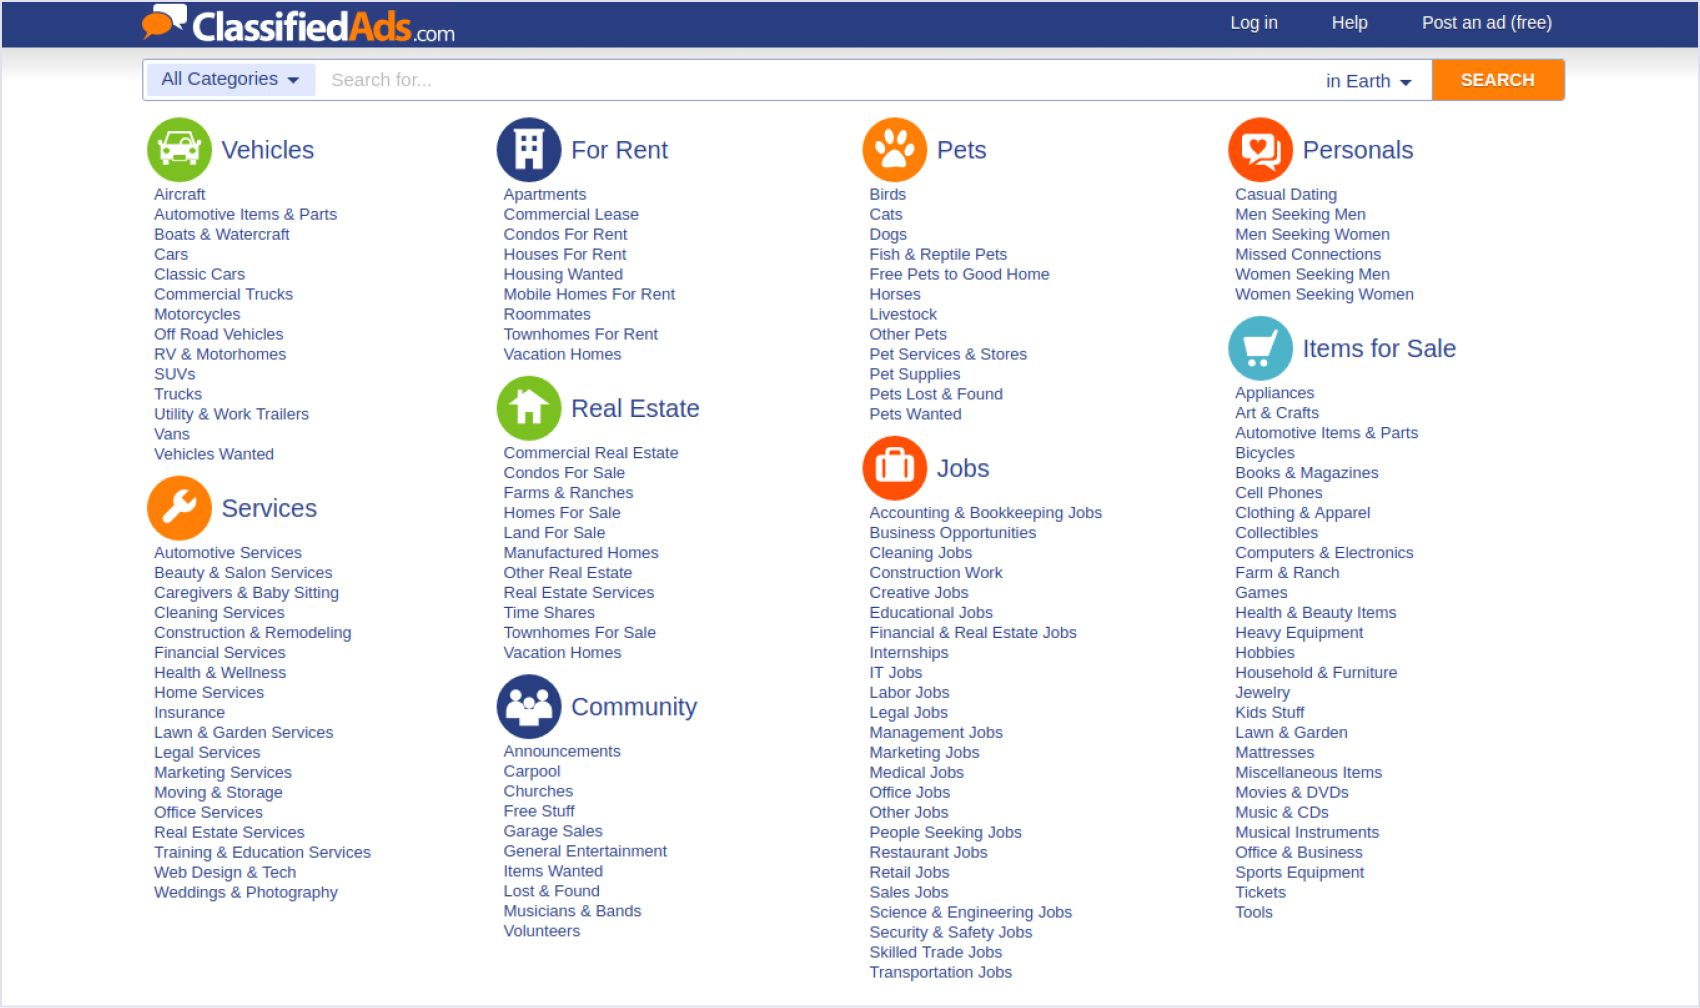 Building A Classifieds Website Like Craigslist All You Need To Know In 2020 Classified Ads Ads Classifieds